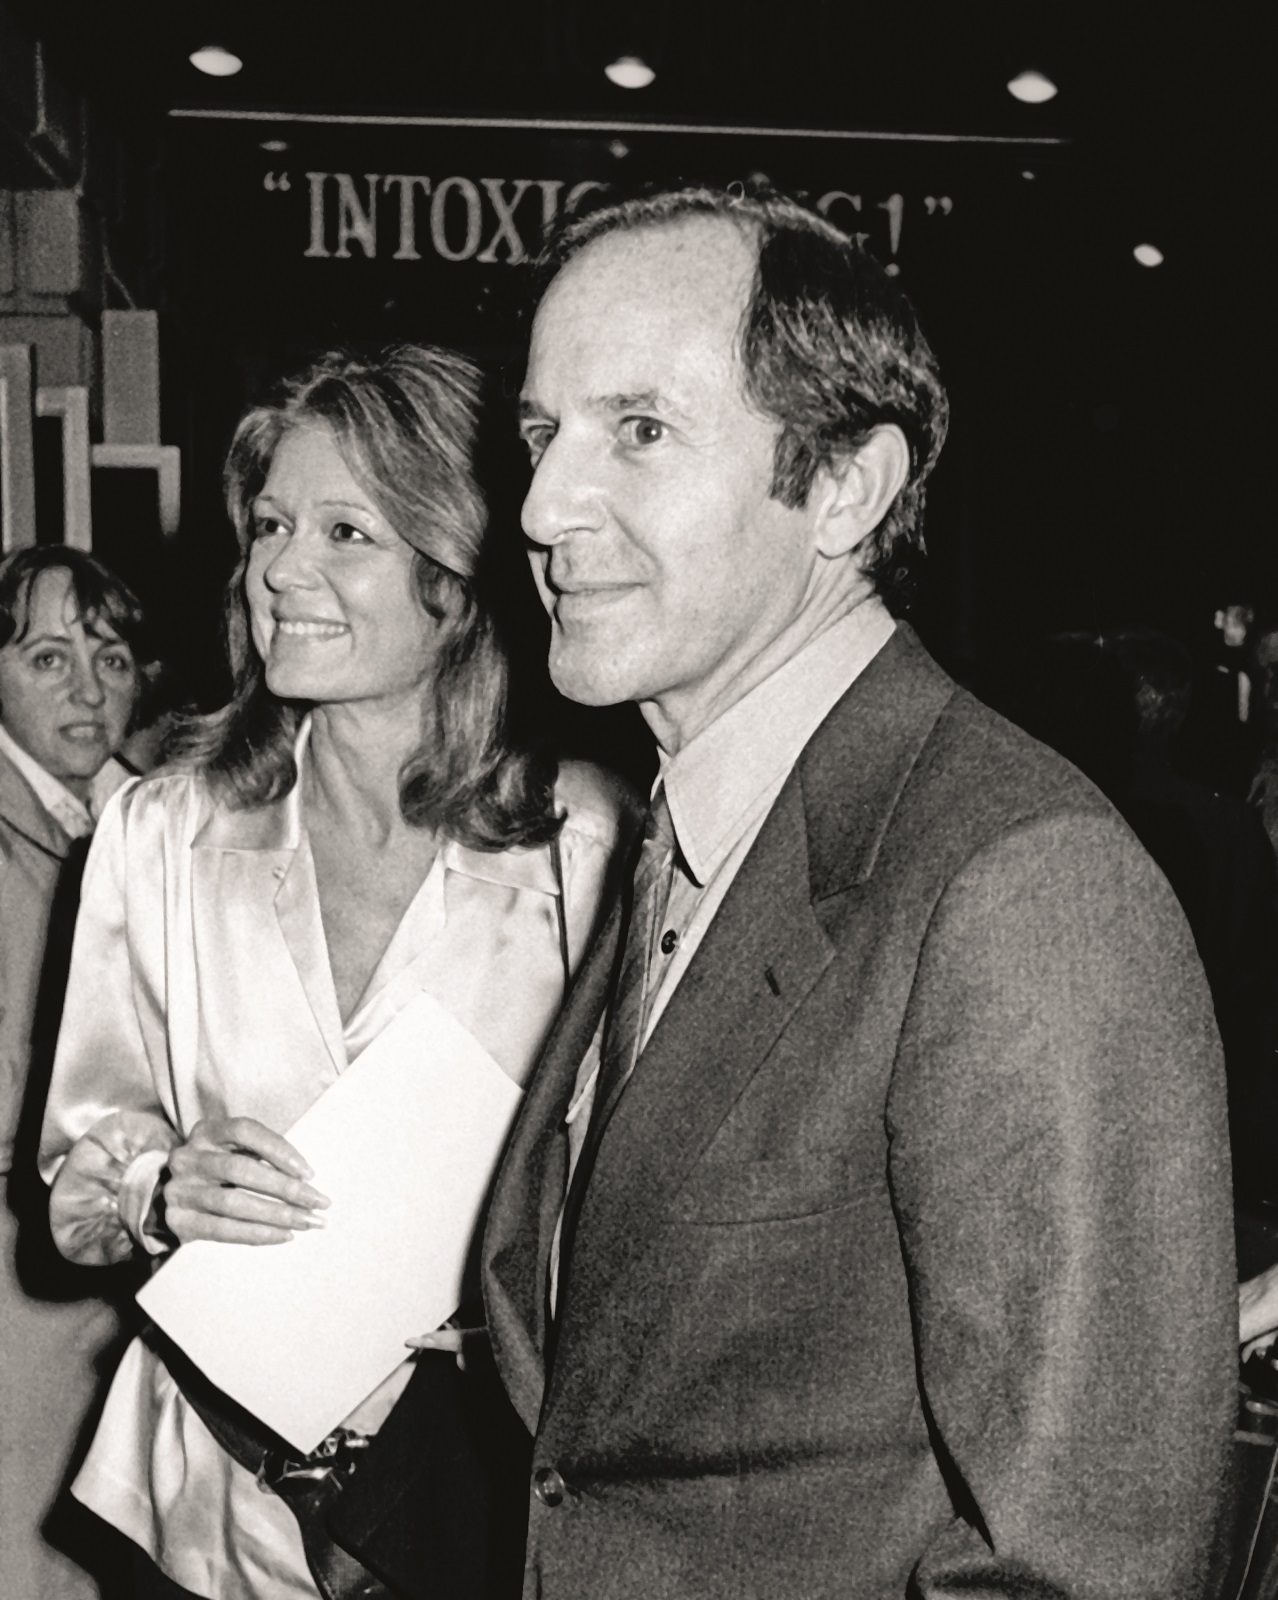 NEW YORK CITY - NOVEMBER 17:  Gloria Steinem and Mort Zuckerman attend PEN Literary Celebration on November 17, 1985 at the Royal Theater in New York City. (Photo by Ron Galella/Ron Galella Collection via Getty Images)